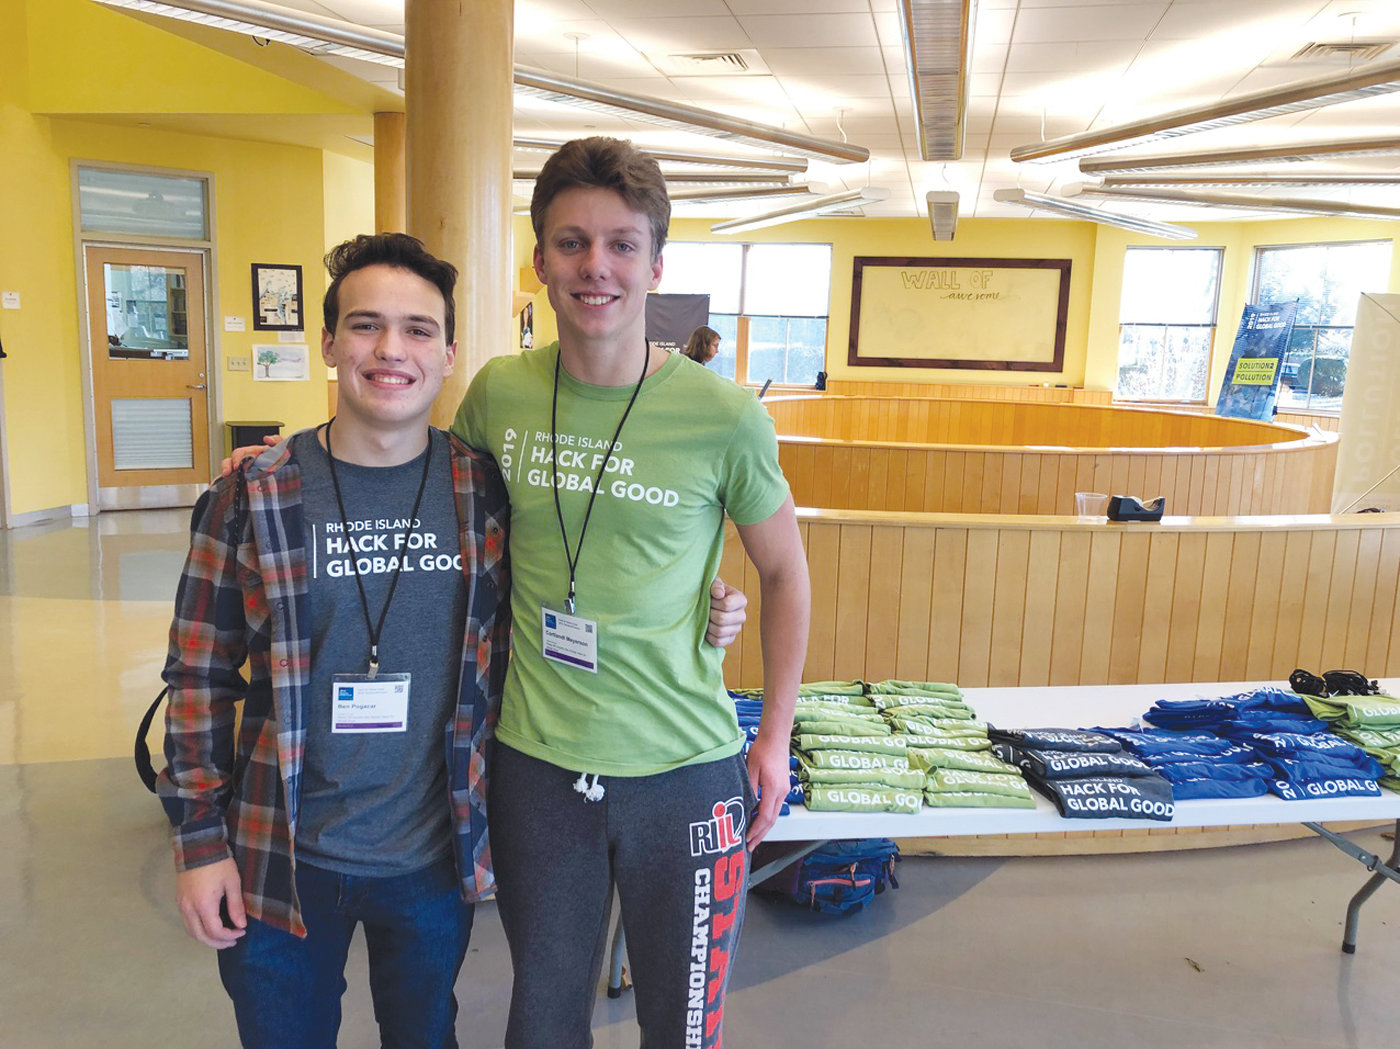 FOUNDERS: Rocky Hill students Ben Pogocar (left) and Courtlandt Meyerson developed the concept of bringing together students from across the state to hack some real world problems.